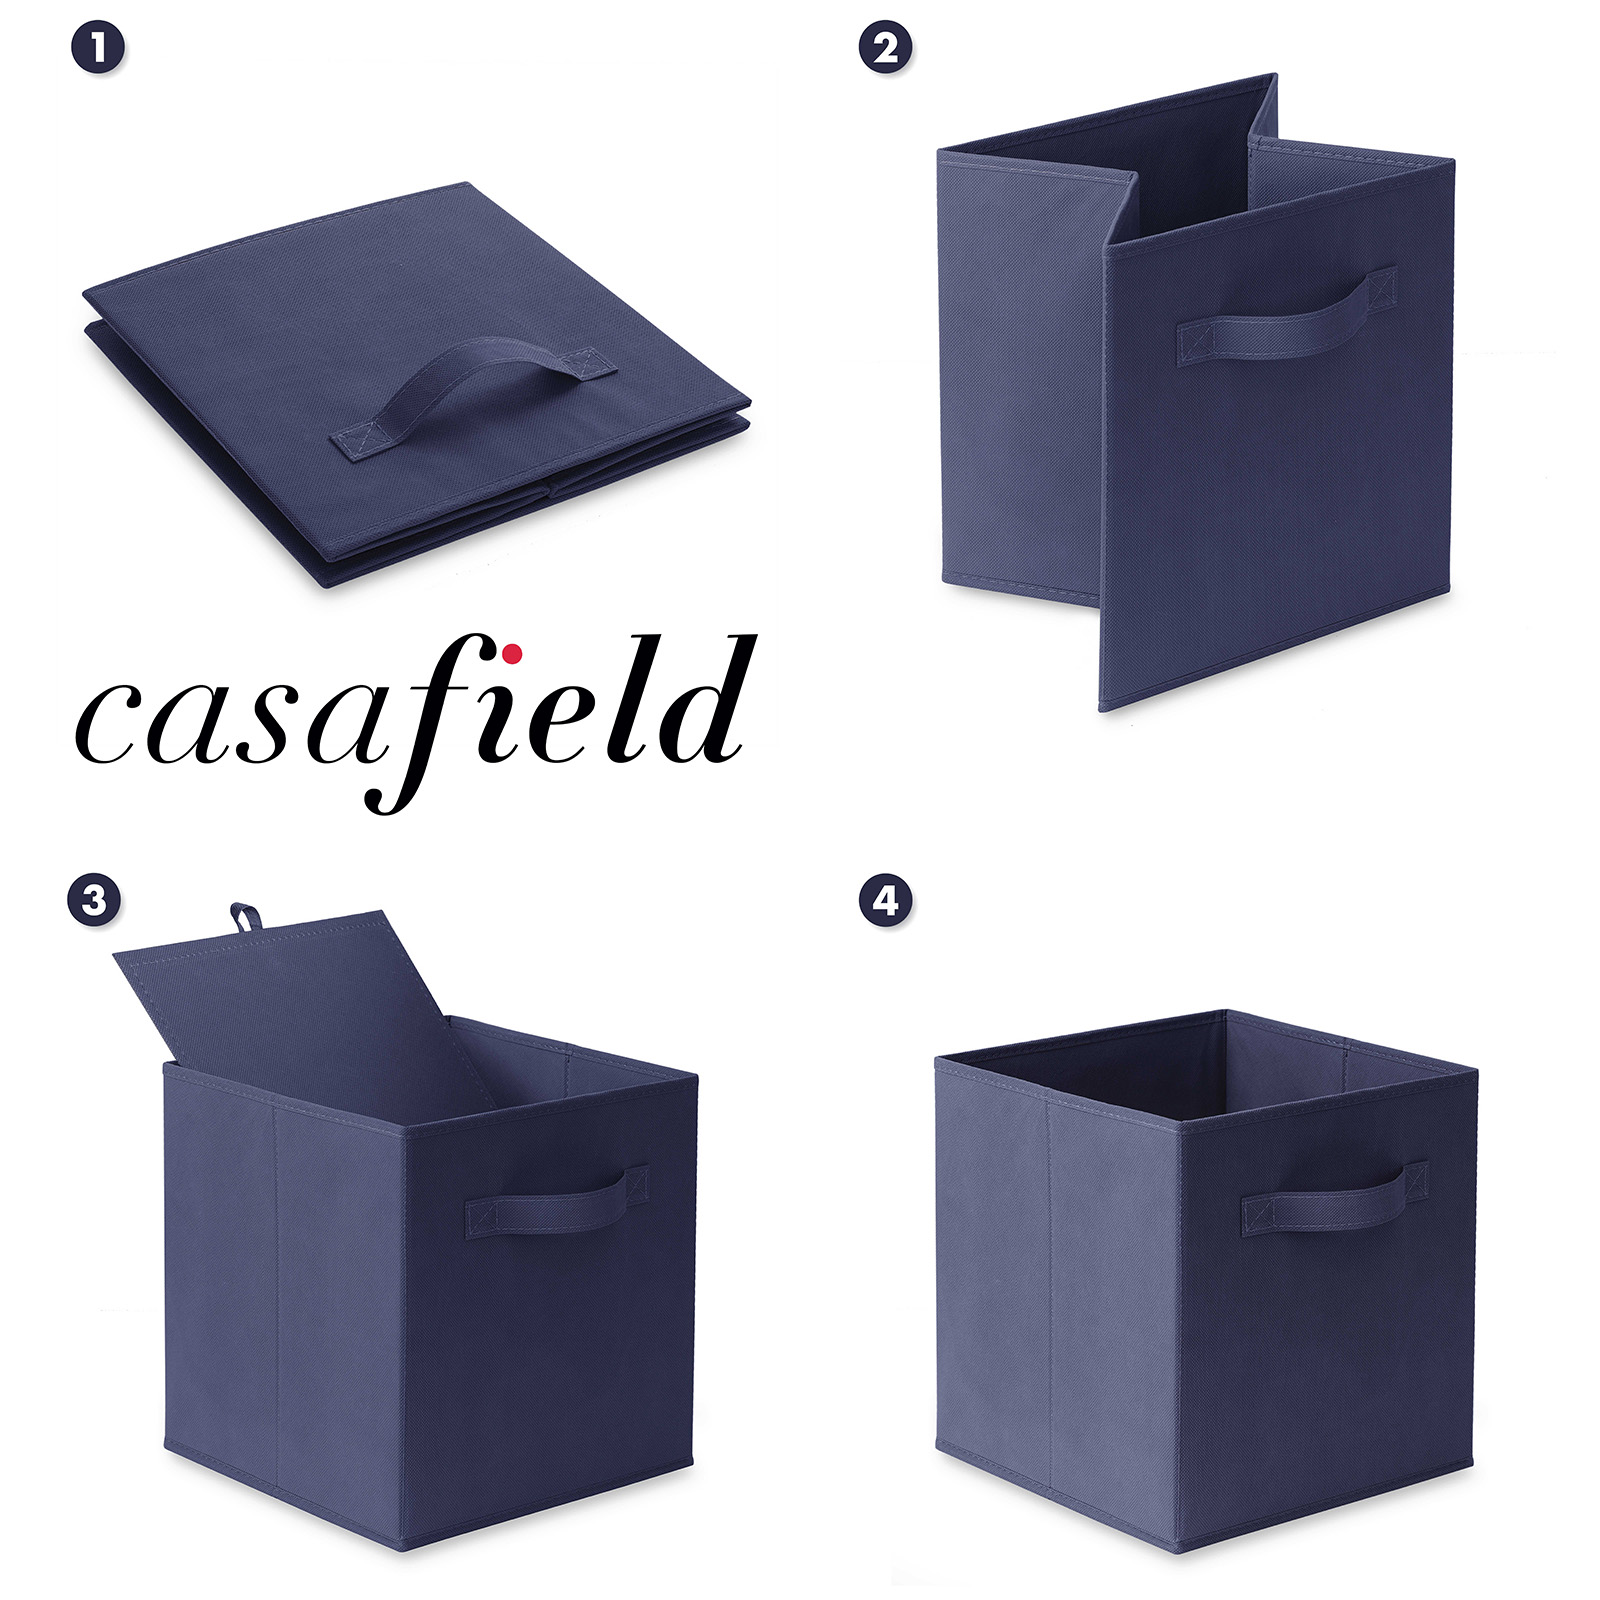 6-Collapsible-Foldable-Cloth-Fabric-Cubby-Cube-Storage-Bins-Baskets-for-Shelves thumbnail 58